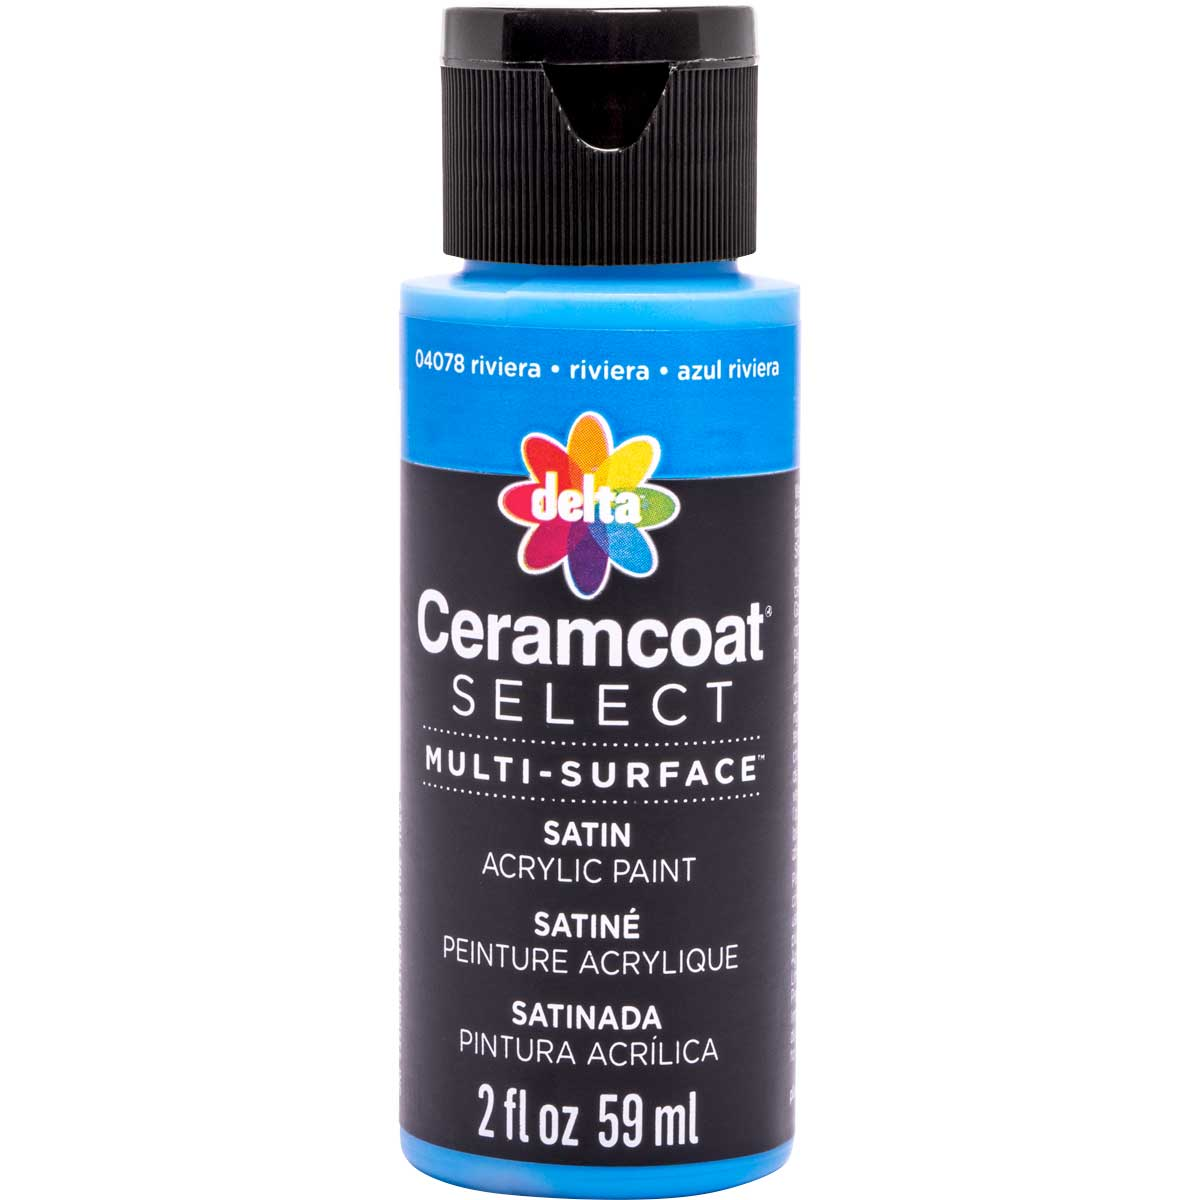 Delta Ceramcoat ® Select Multi-Surface Acrylic Paint - Satin - Riviera, 2 oz.